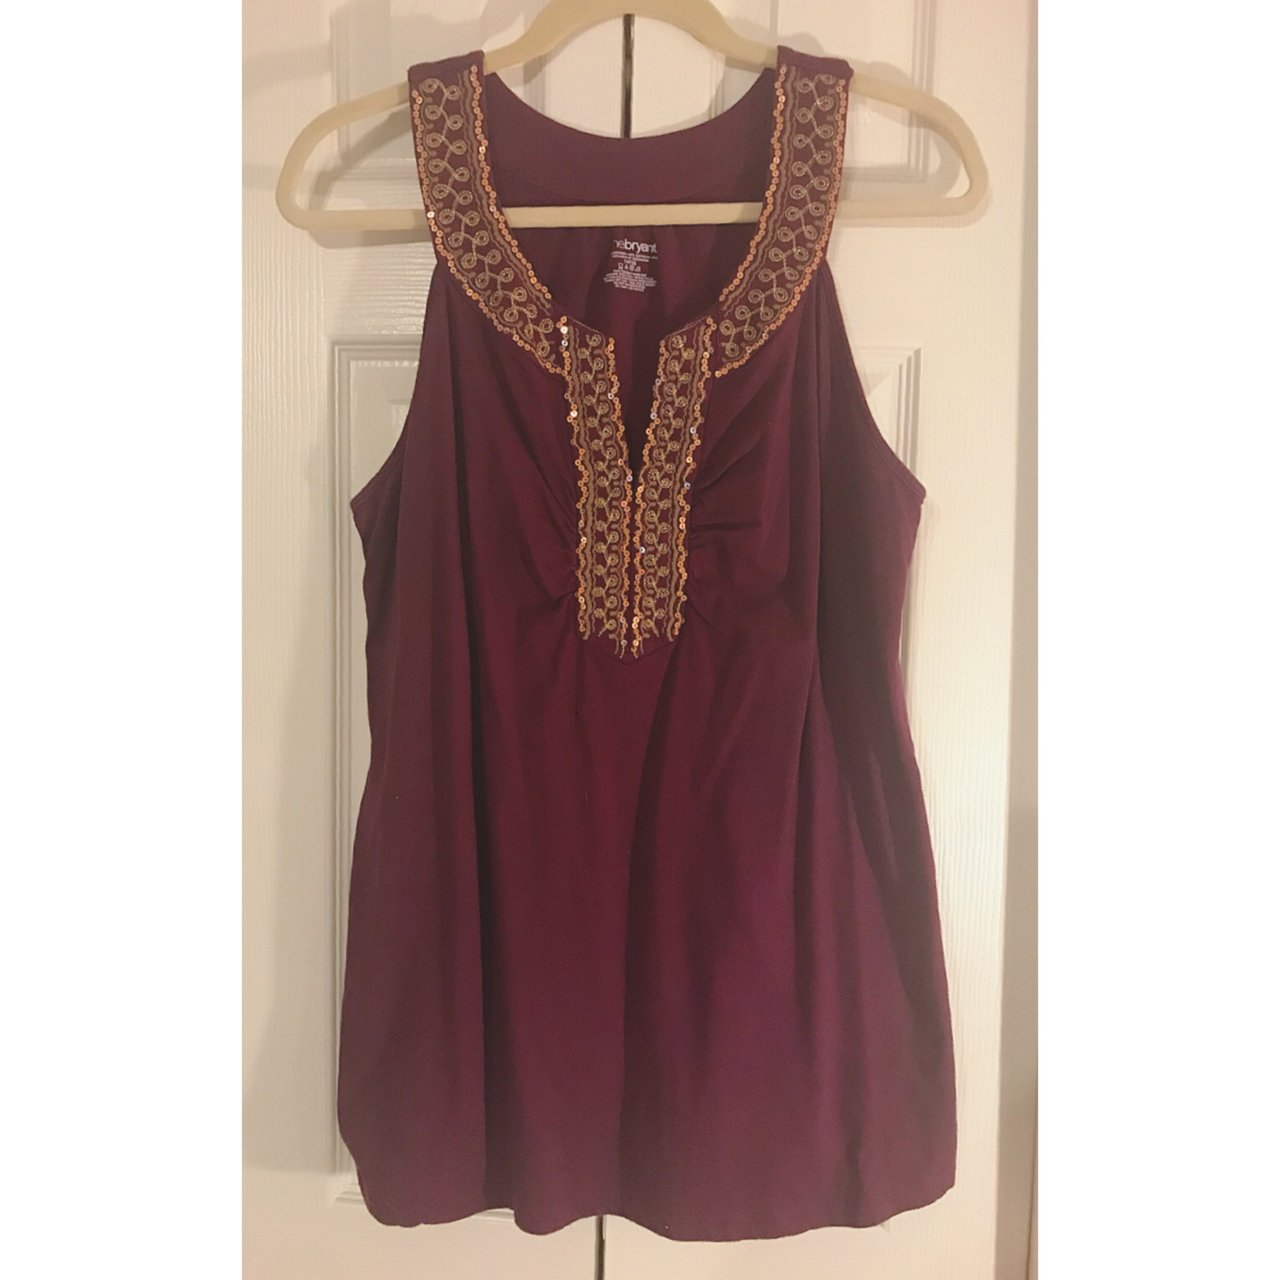 c14fb9fd355dc Lane Bryant size 14 16 Moroccan style sequin tank top with - Depop